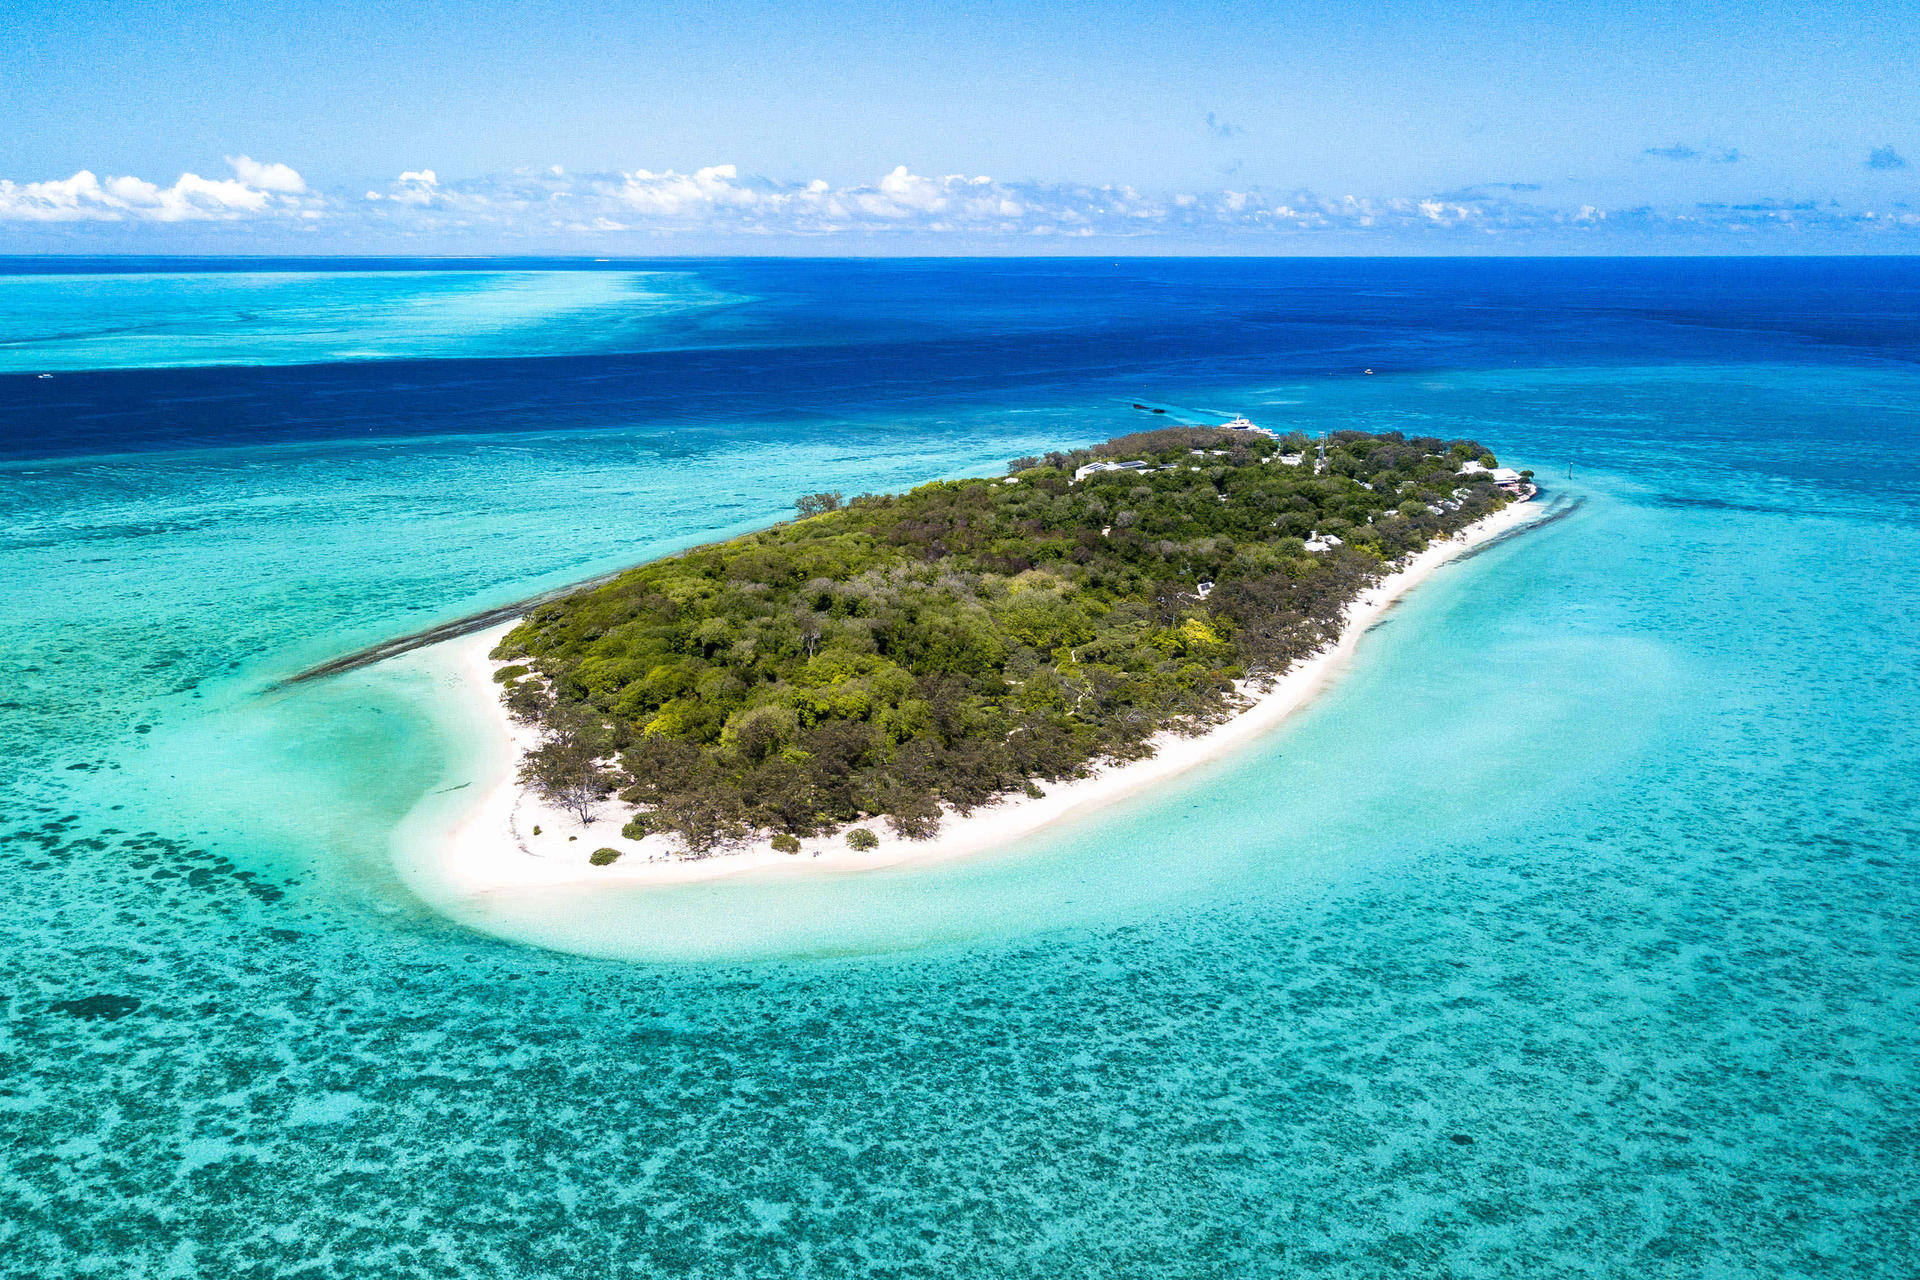 Heron Island Resort in Queensland, Australia